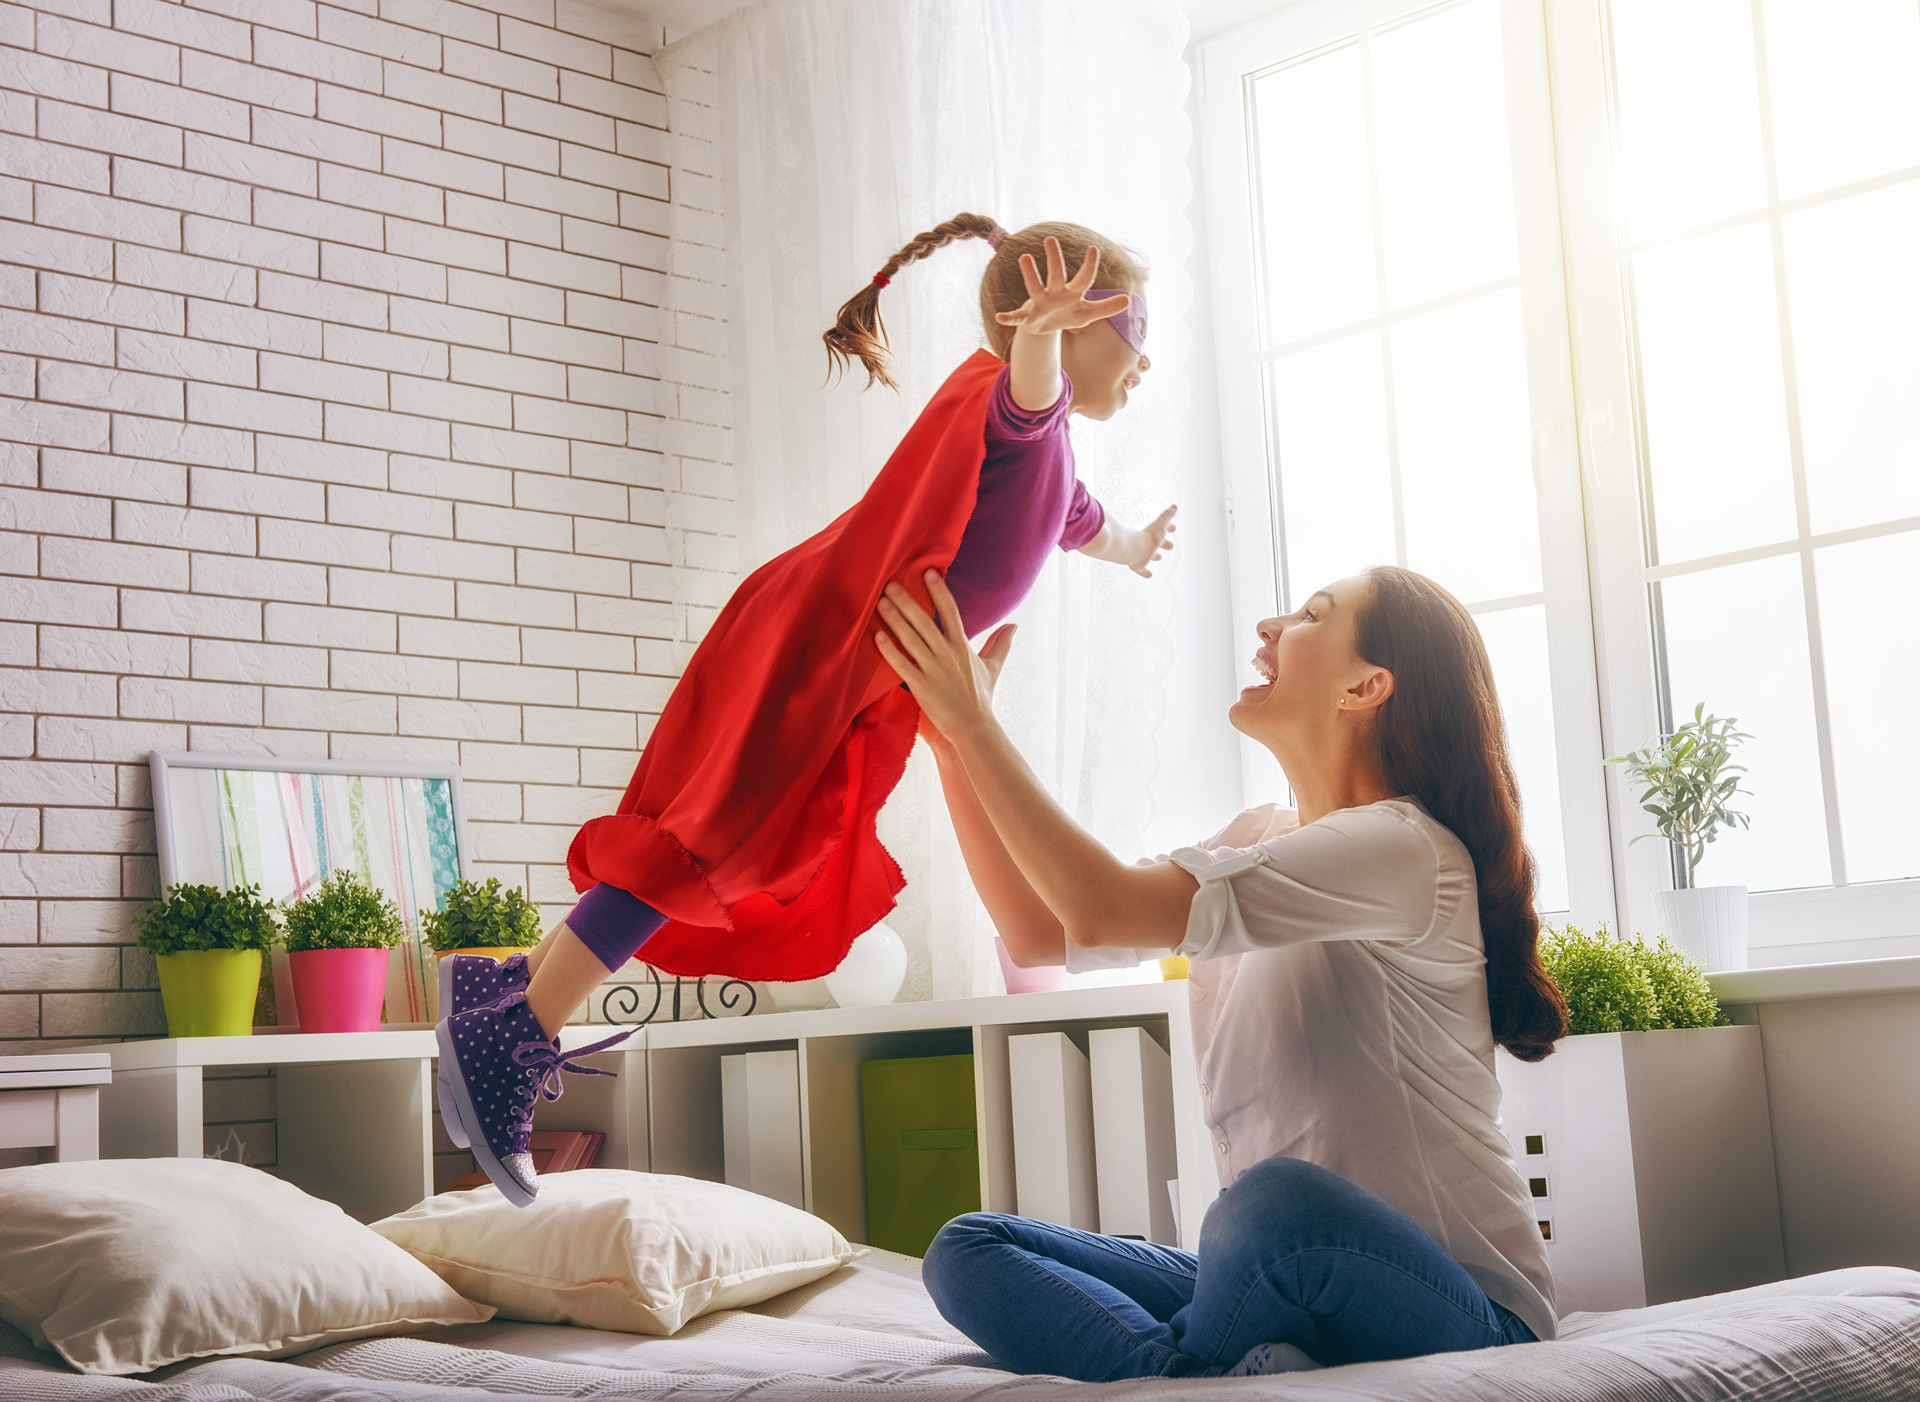 mother-and-her-child-girl-playing-together-girl-in-an-supermans-costume-the-child-having-fun-and-jumping-on-the-bed